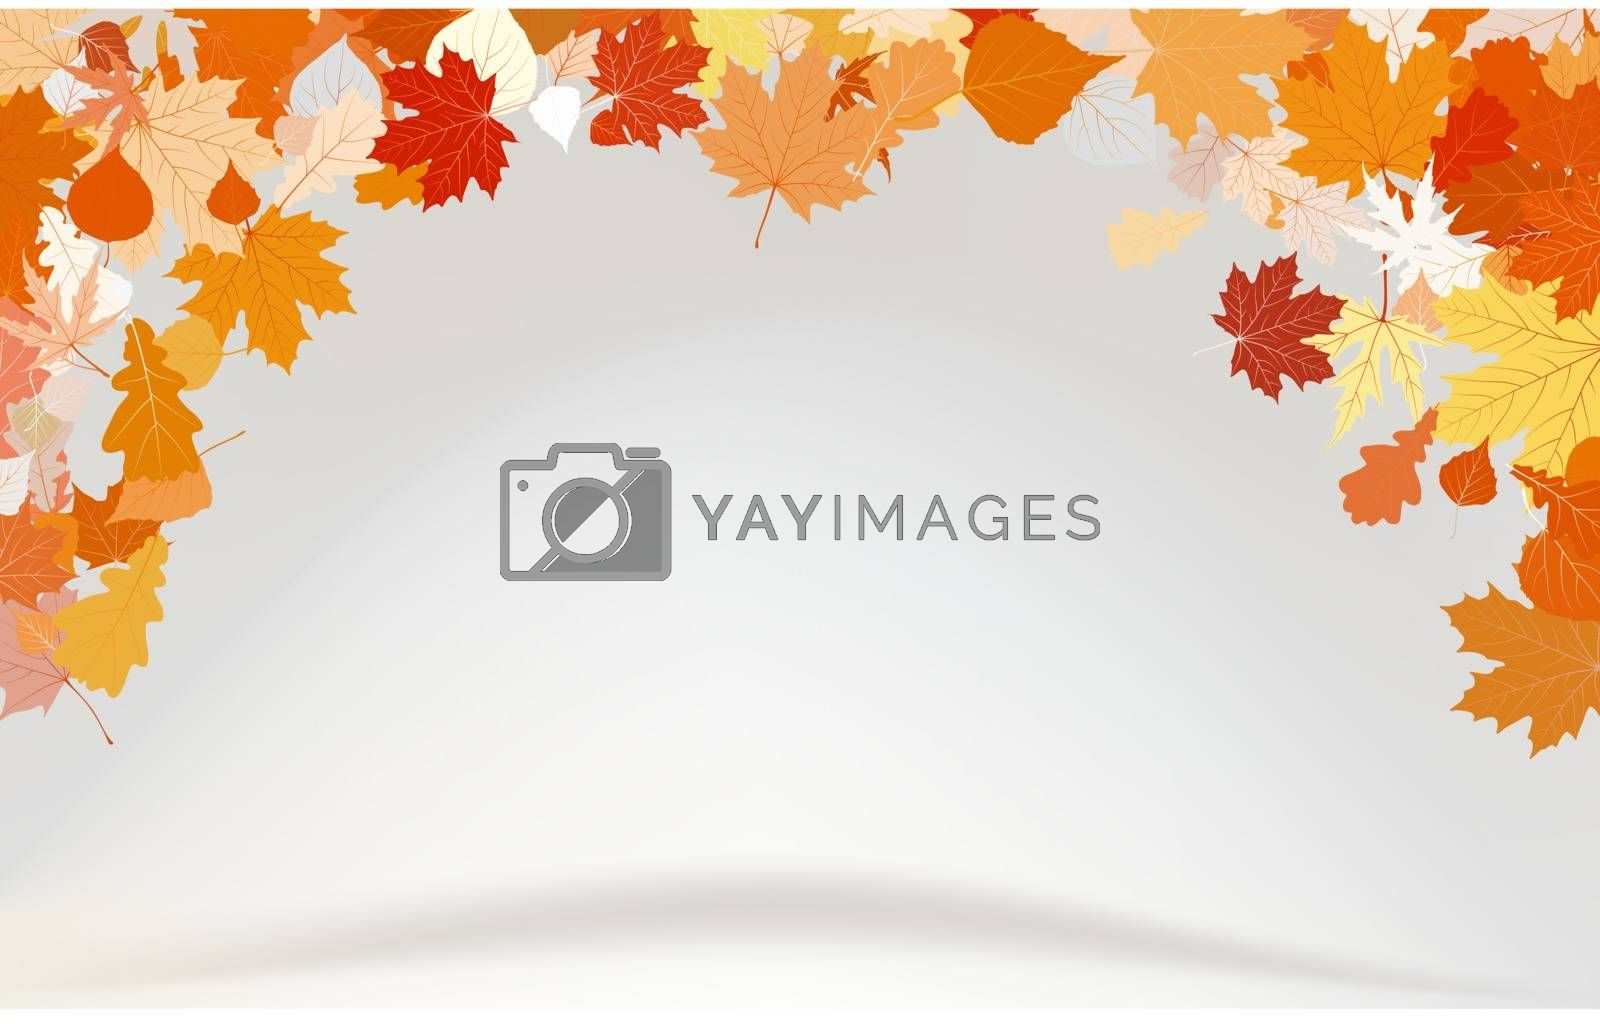 Abstract fly leafs vector background. EPS 8 vector file included